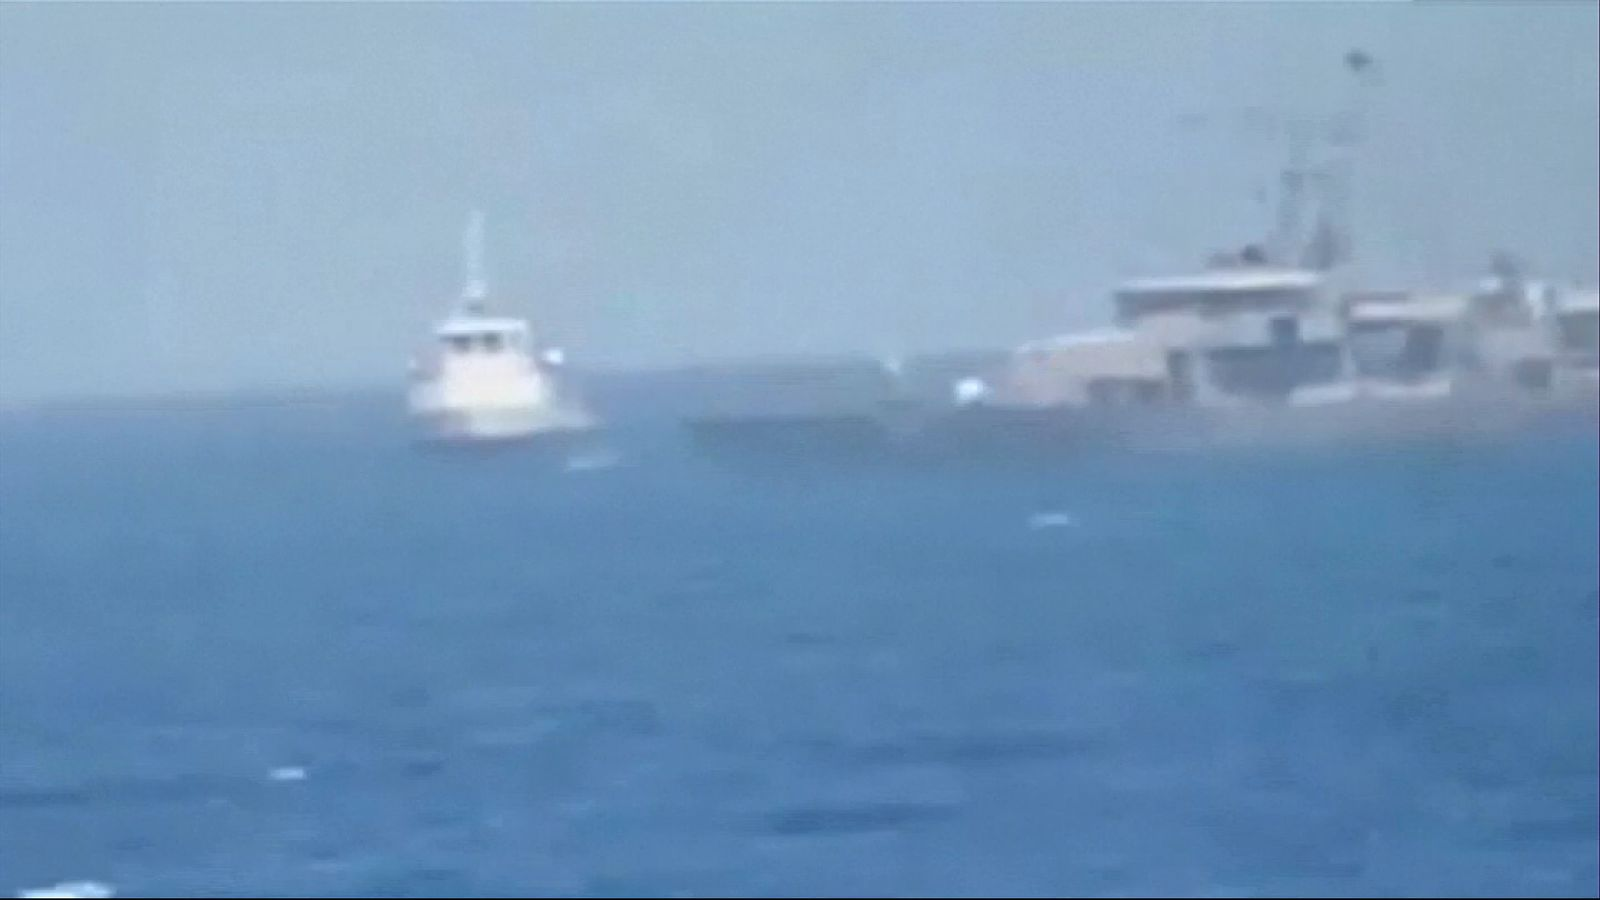 US and Iran push during sea with warning shots fired